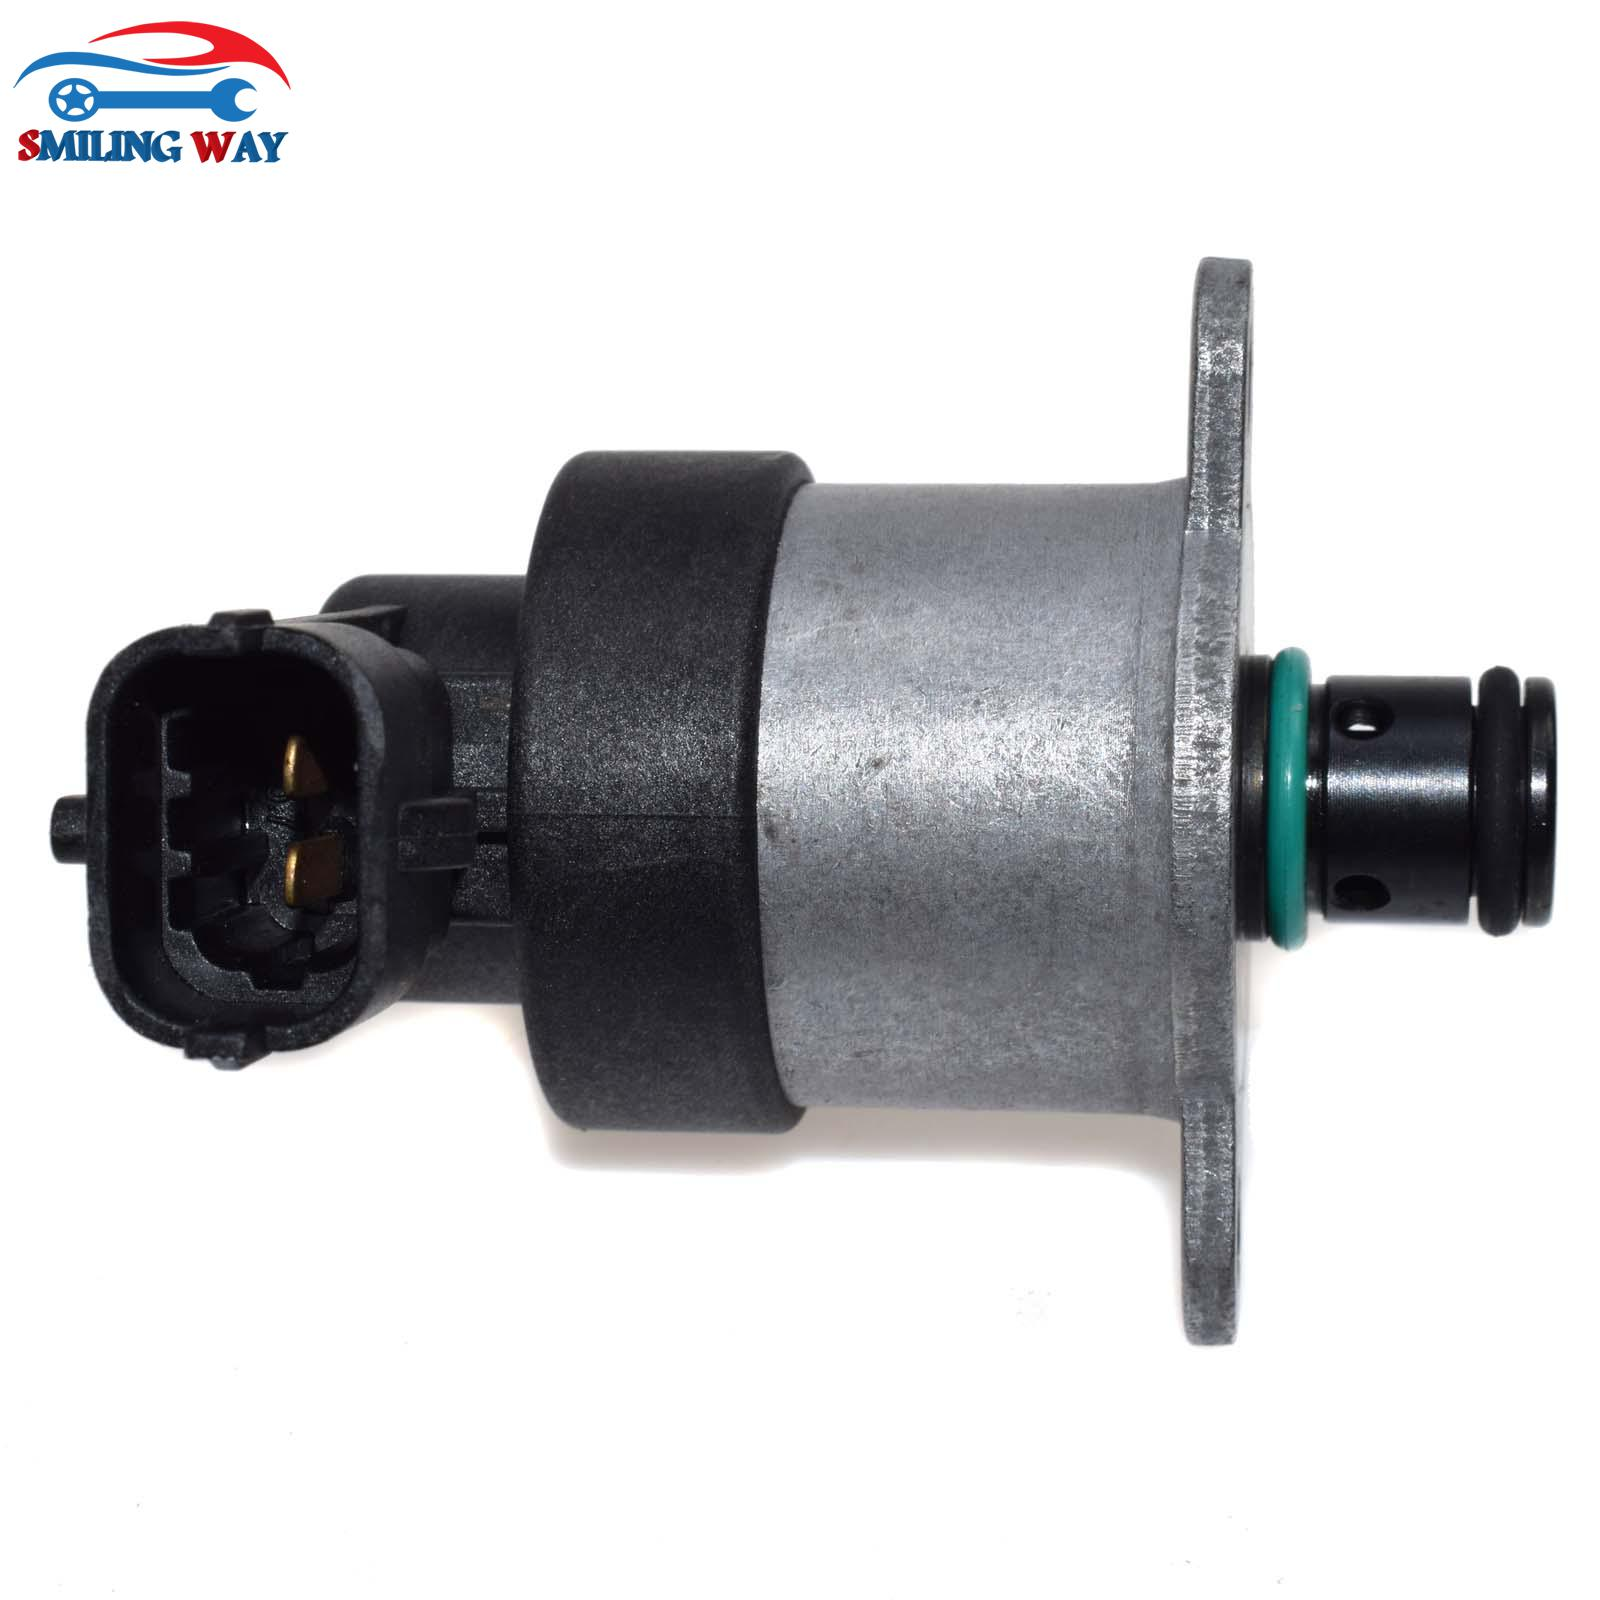 Buy Lly Duramax And Get Free Shipping On Lb7 Fuel Pressure Regulator